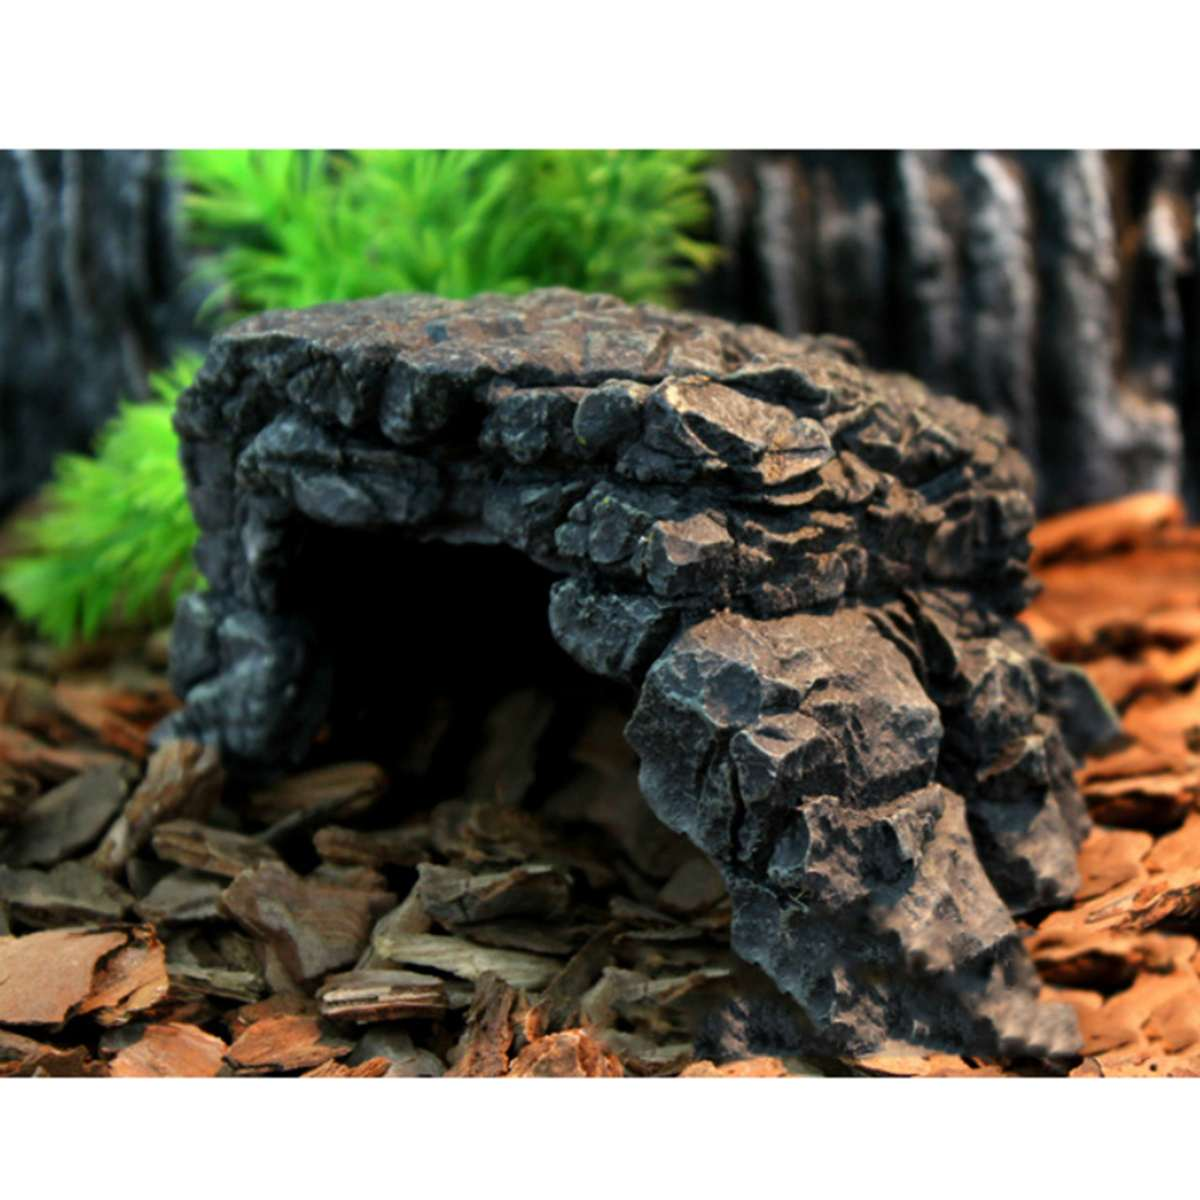 US $4.85 40% OFF|Turtle Reptile Hiding Cave Resin Fish Turtle Tank Basking Decoration Tortoise Terrace Lizard Scorpion Hideout House Ornaments-in Terrariums from Home & Garden on AliExpress - 11.11_Double 11_Singles